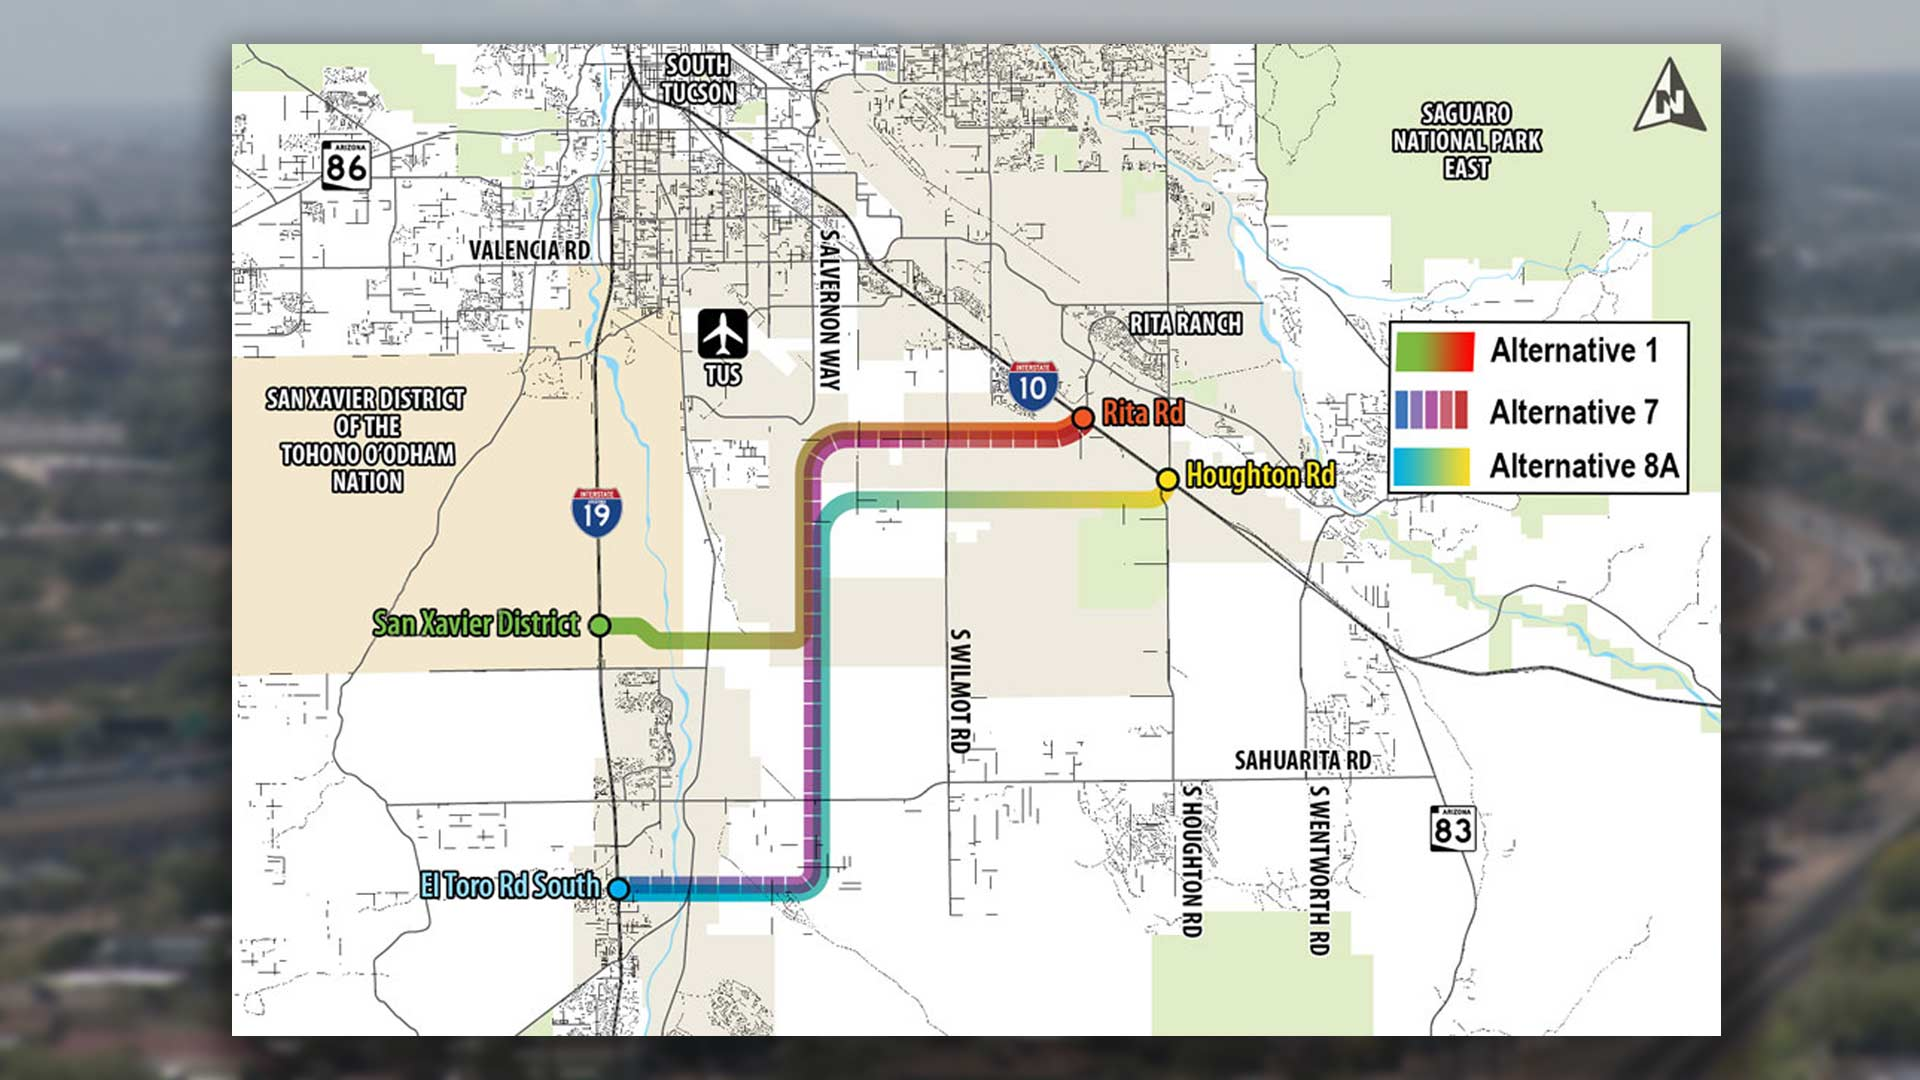 "Three proposed routes for the ""Sonoran Corridor"" freeway project shown in an Arizona Department of Transportation [map](https://www.azdot.gov/planning/transportation-studies/sonoran-corridor-tier-1-environmental-impact-statement/sonoran-corridor-alternatives) published in connection with a March 7, 2019 meeting and public comment period lasting through April 7."